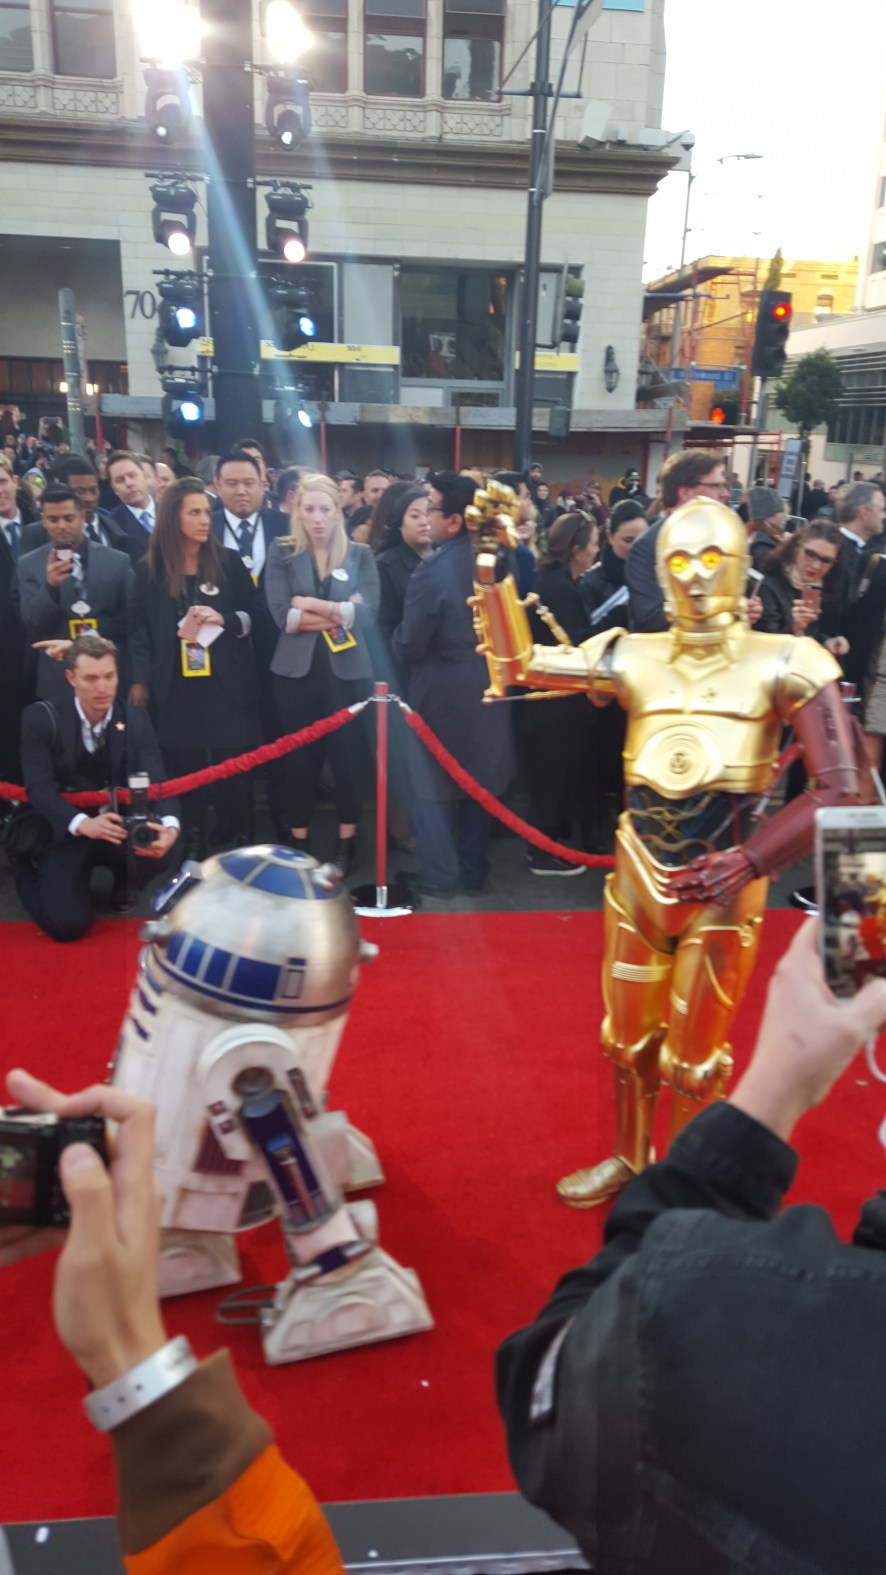 R2-D2 and C-3PO walk the carpet.